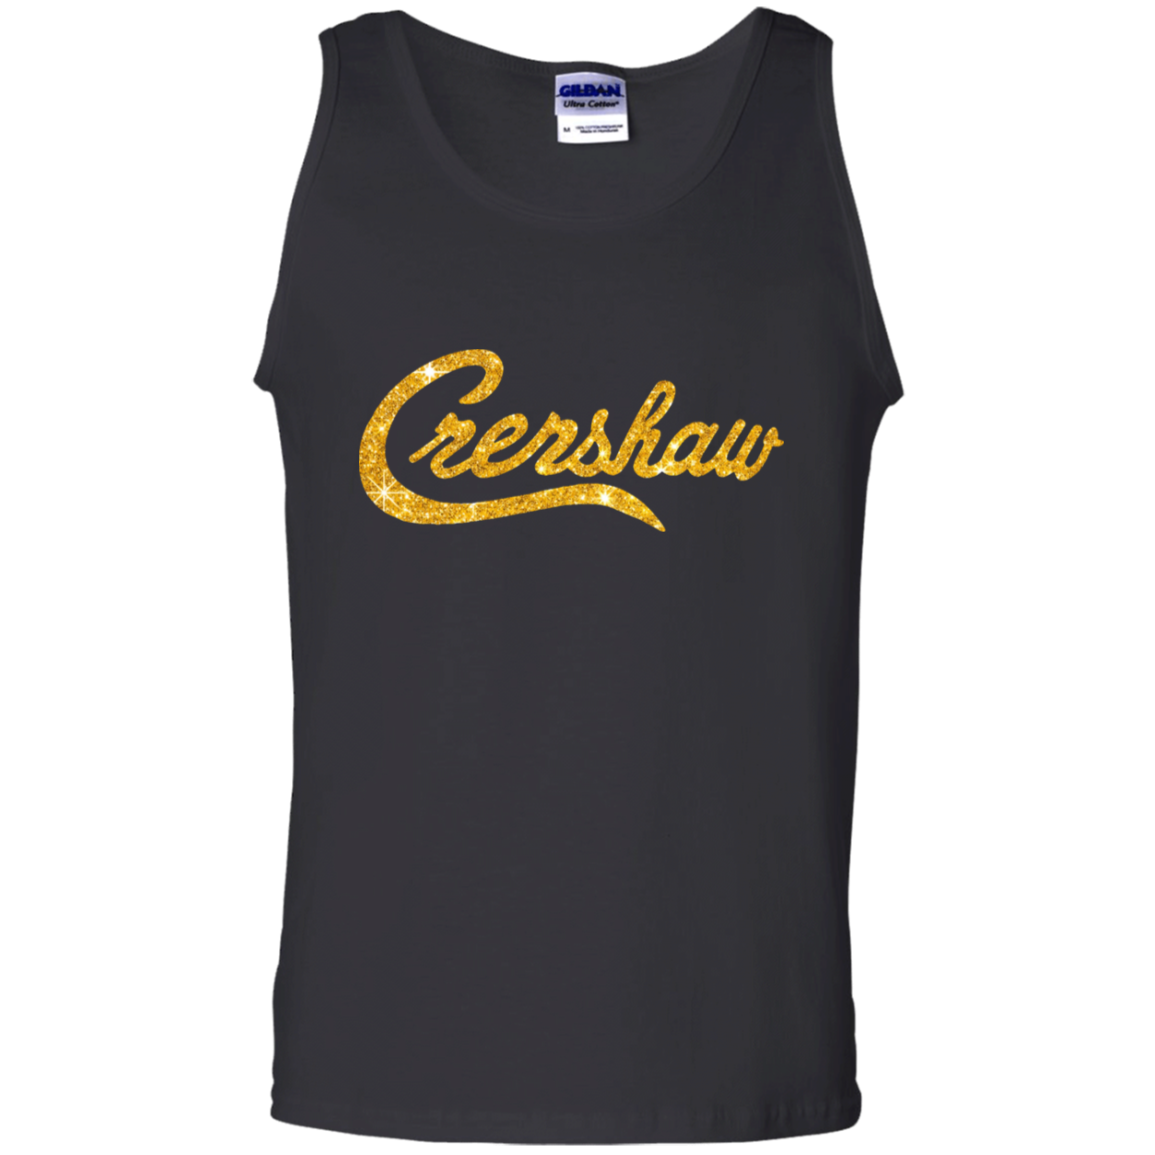 Crenshaw Gold Tank Top